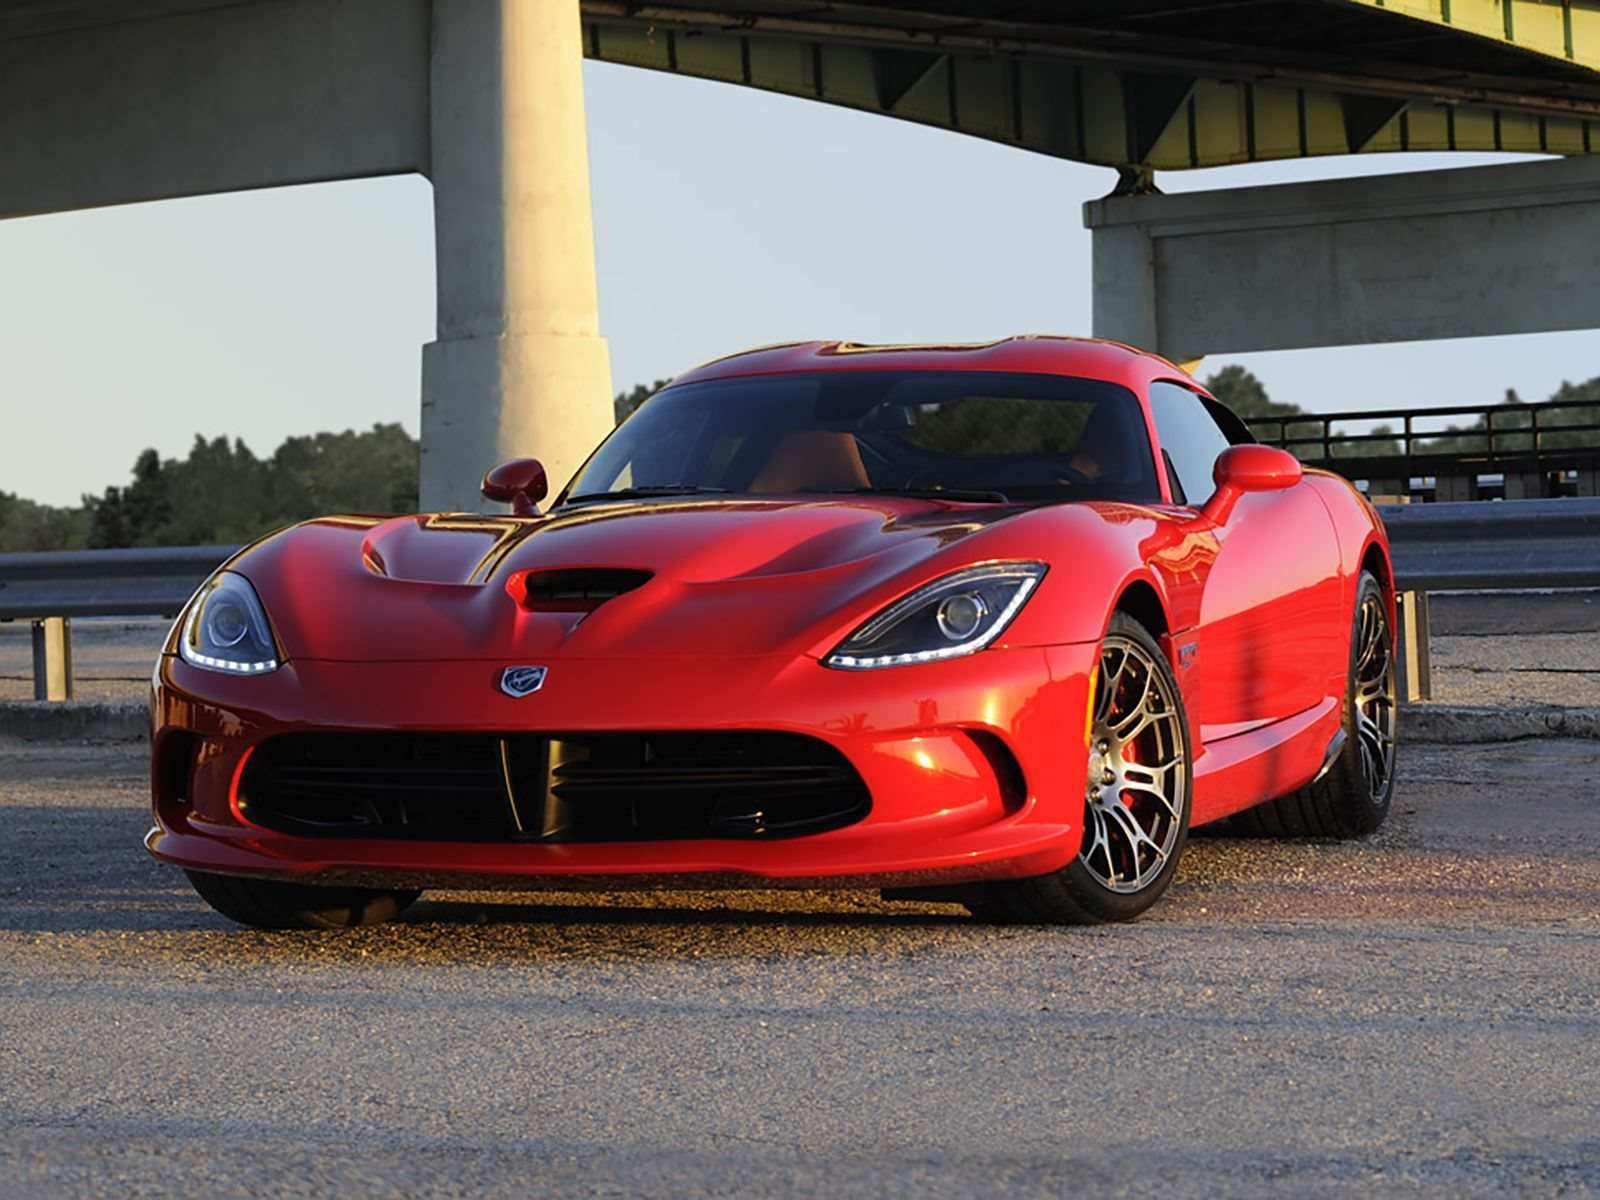 37 A 2020 Dodge Viper Youtube Model